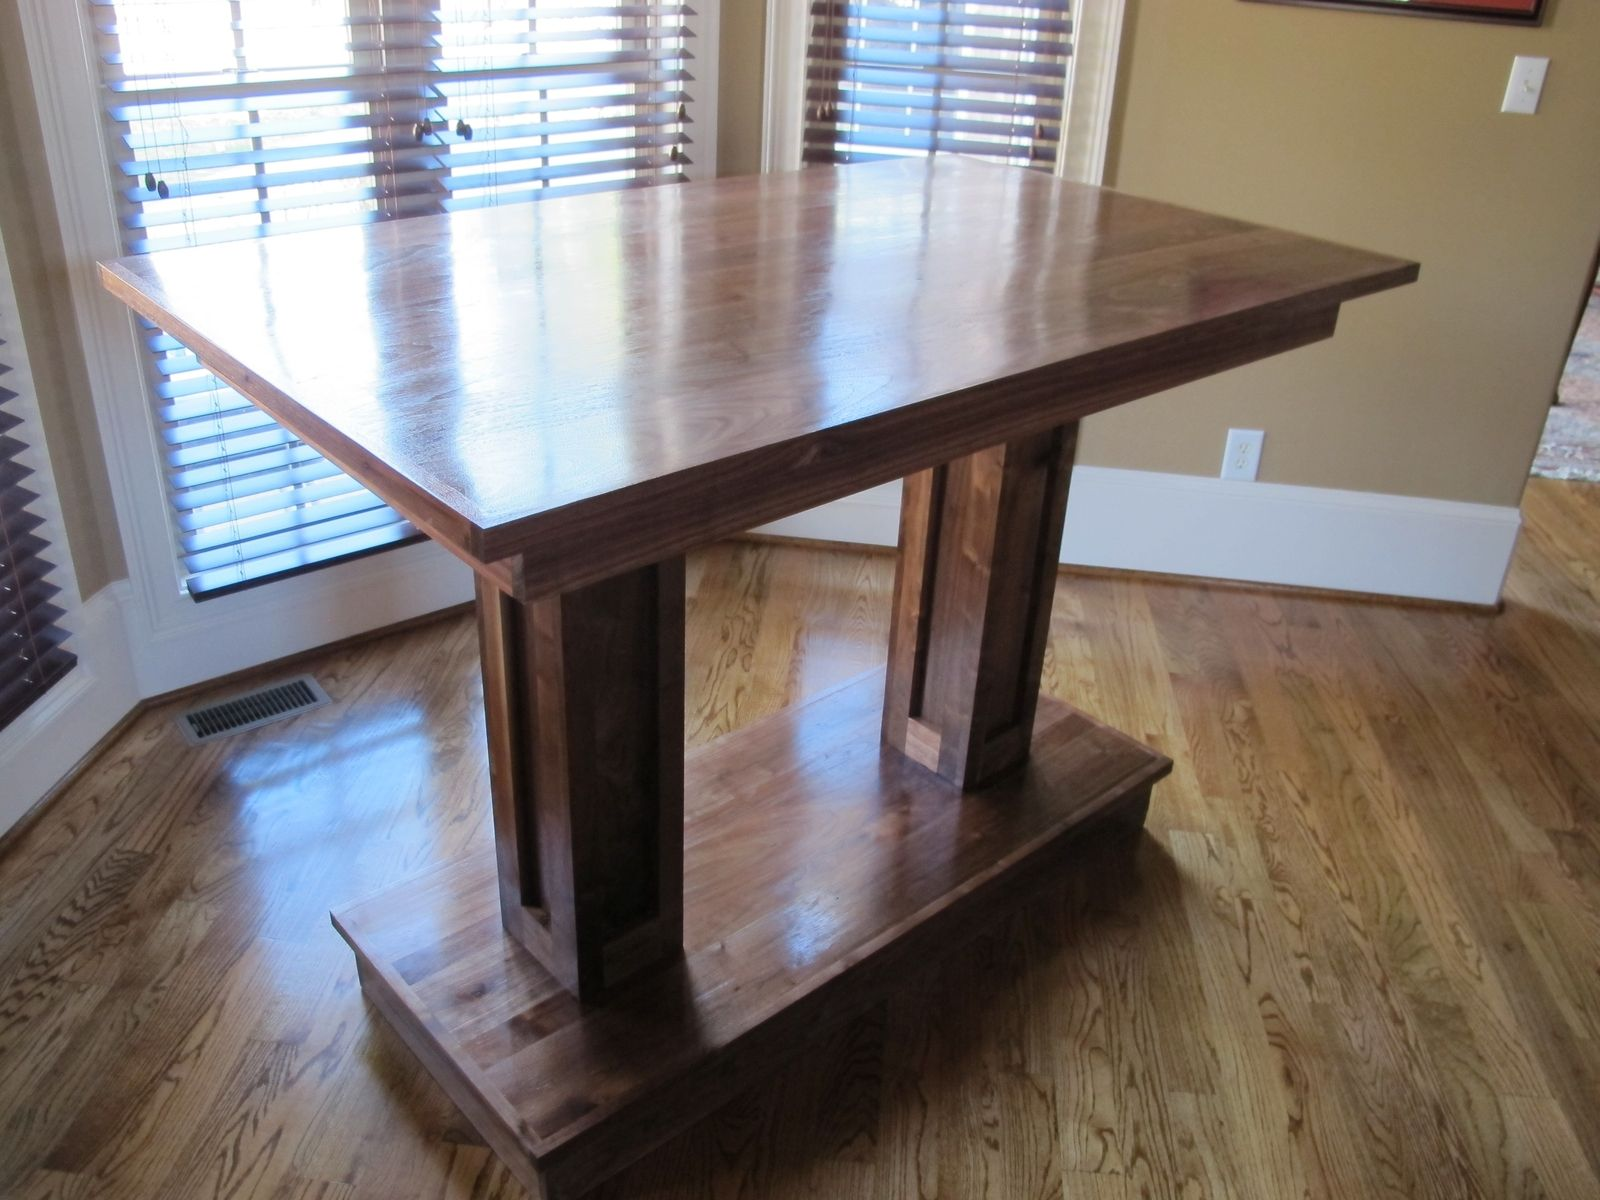 Custom Made Solid Wood Pub Table. Buy a Handmade Solid Wood Pub Table  made to order from Carolina